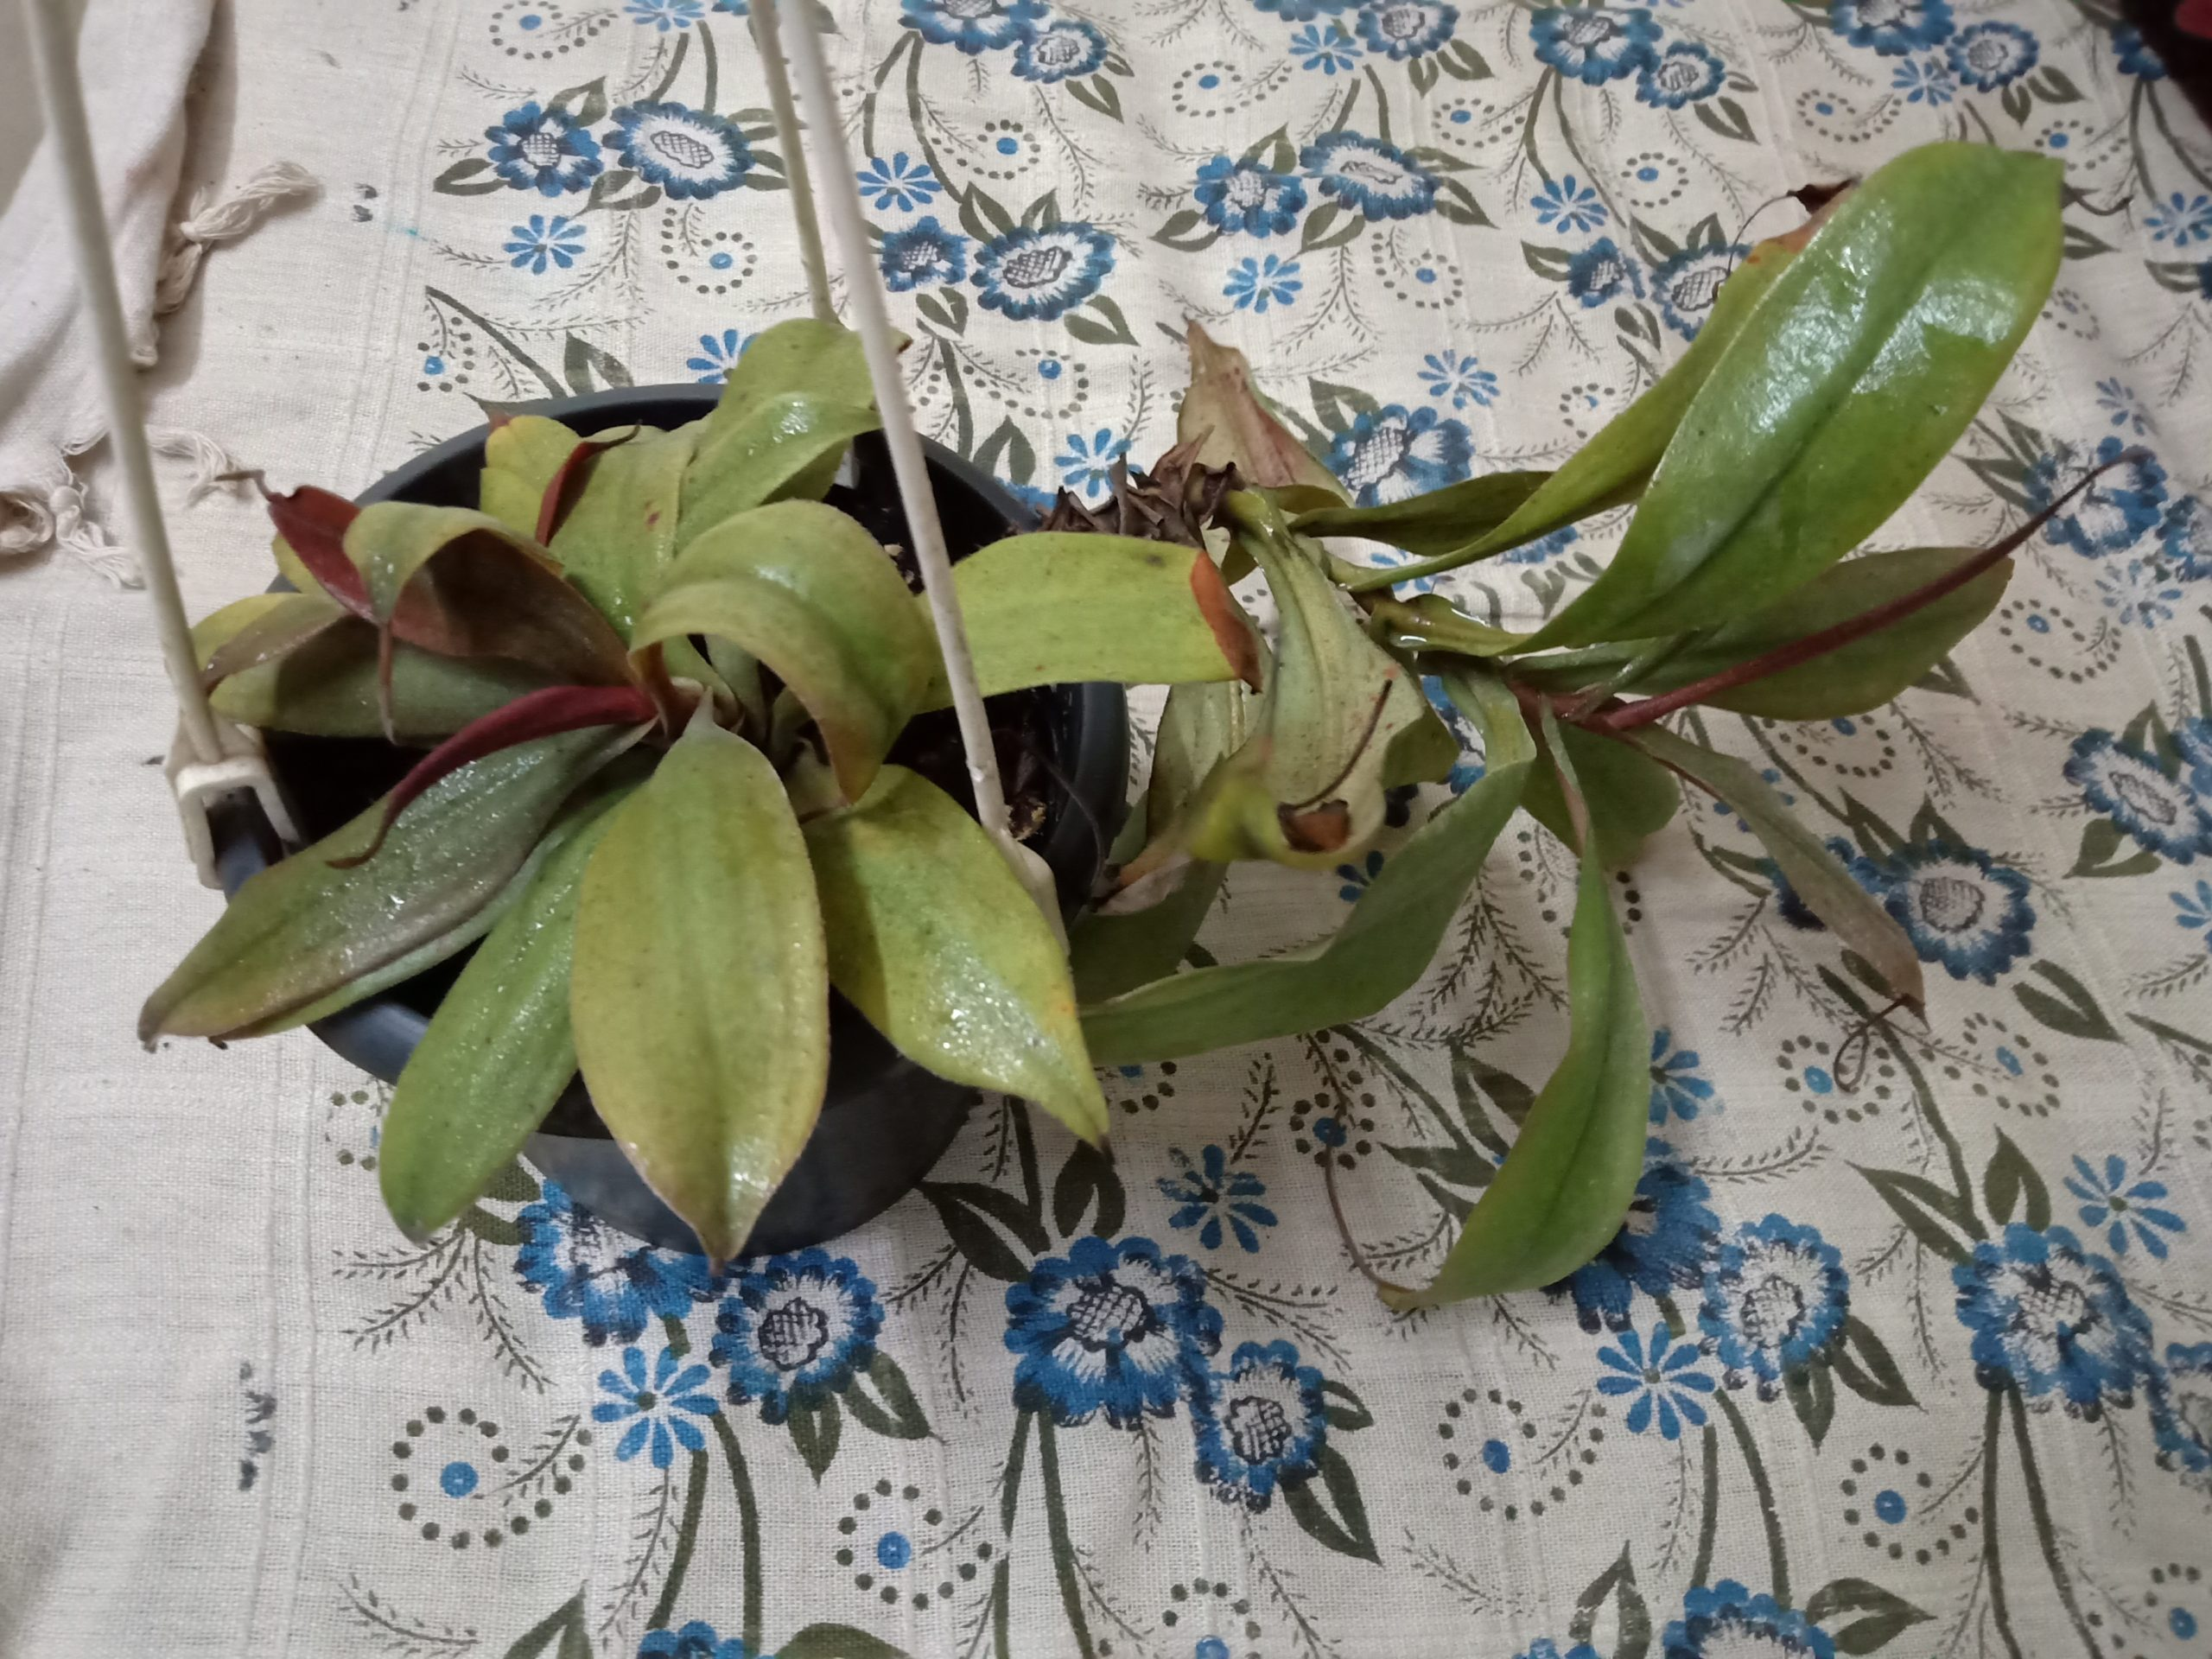 Nepenthes benstonei with multiple basals and a vine